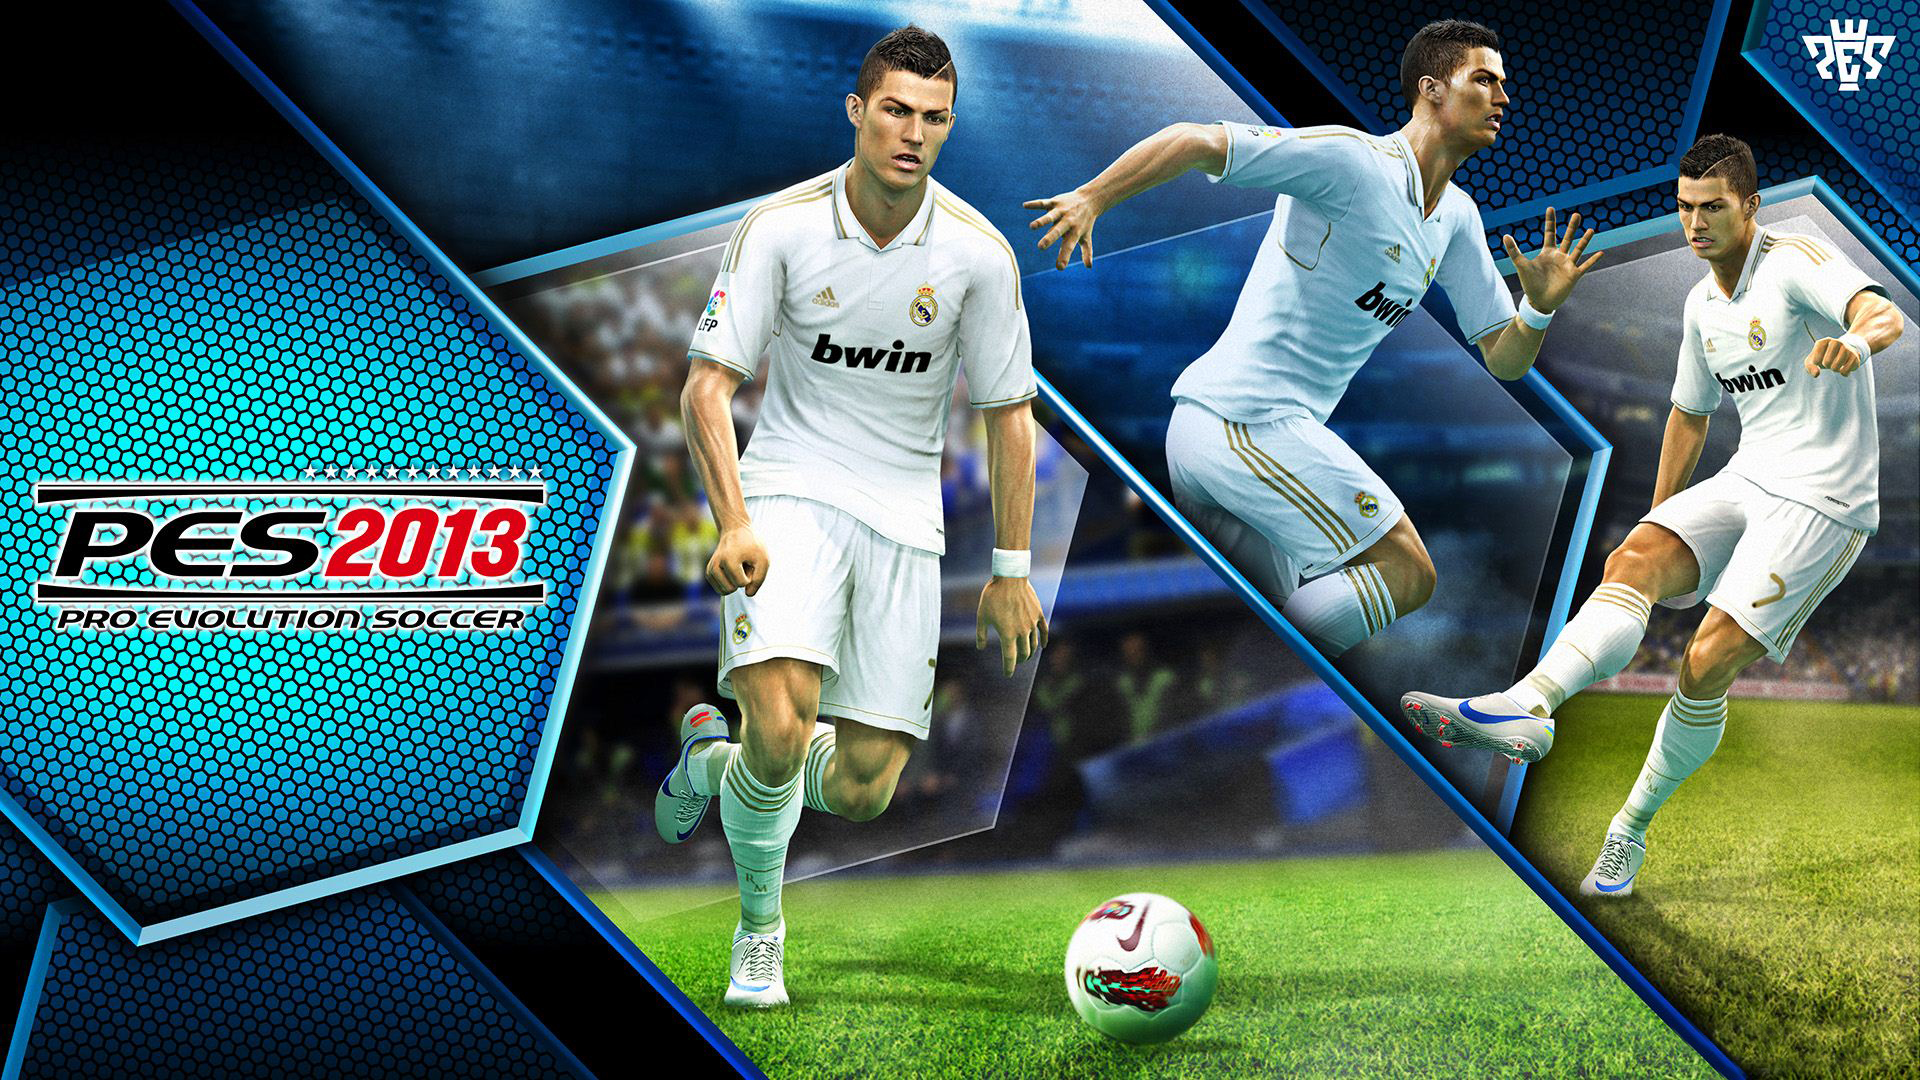 Video Game - Pes 2013  Wallpaper